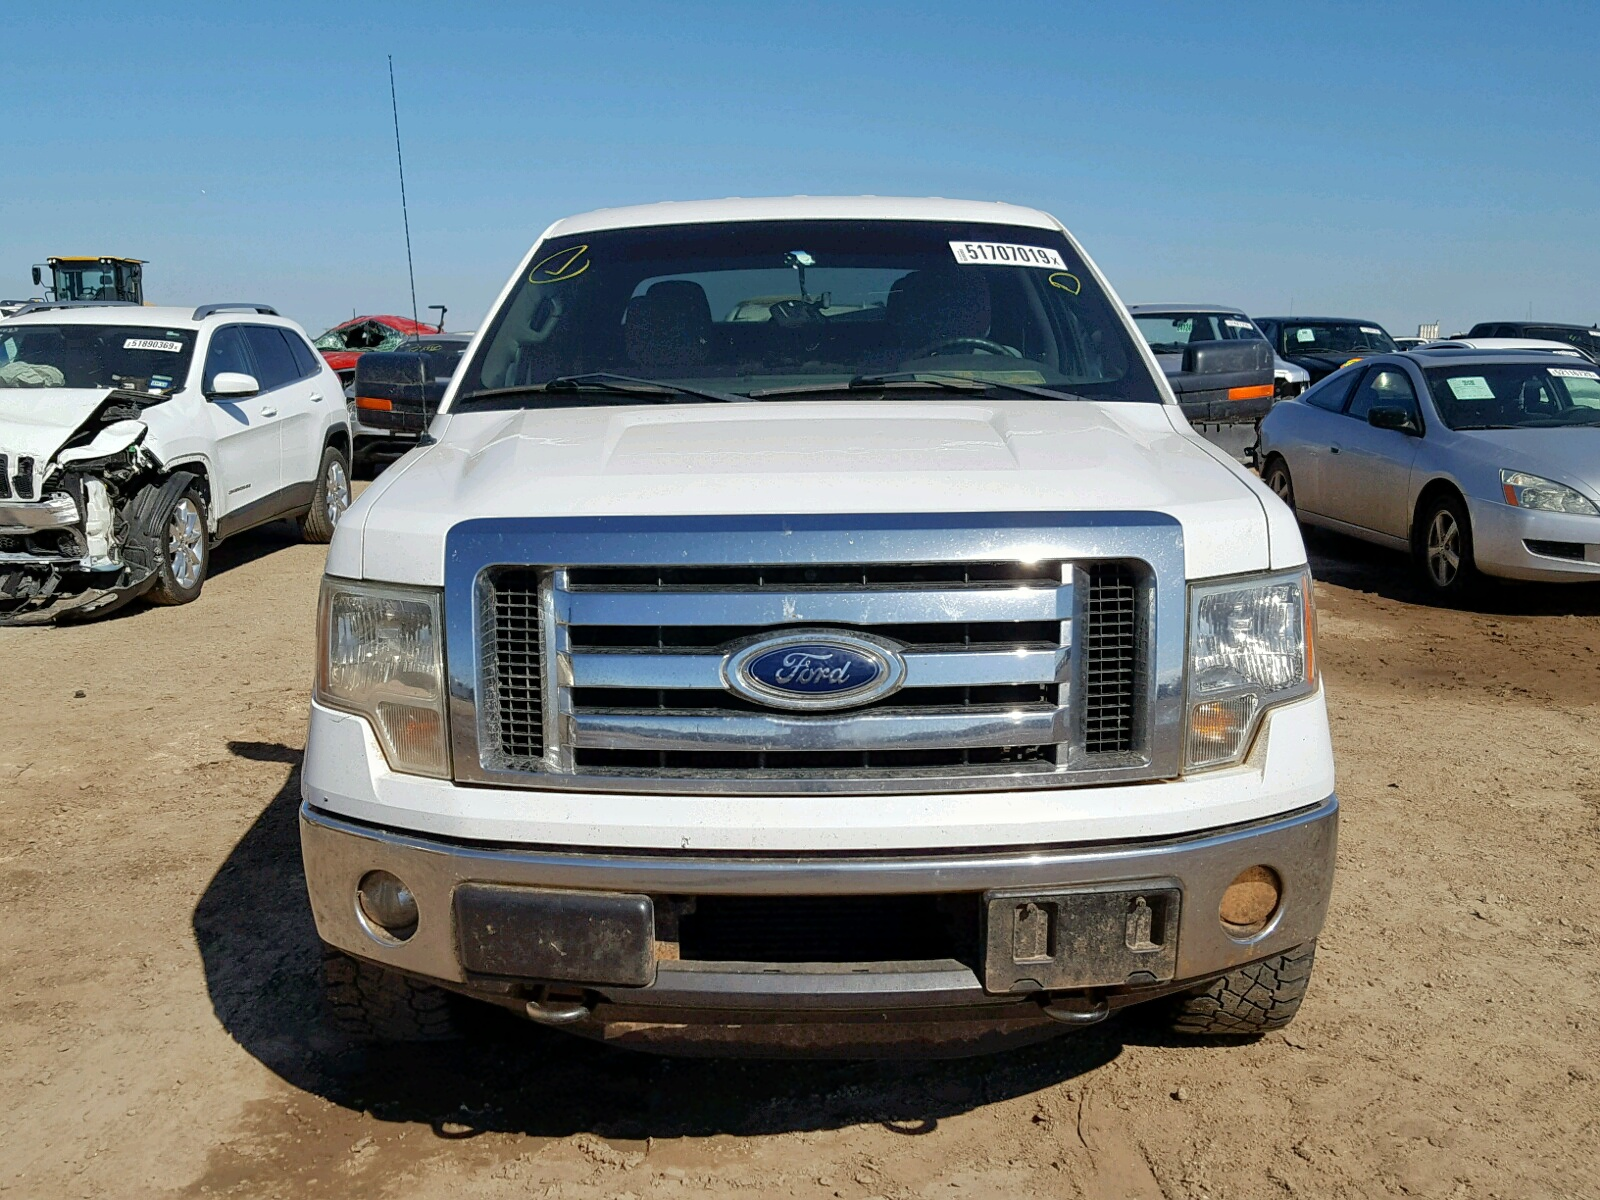 1FTFW1ET8CFC76784 - 2012 Ford F150 Super 3.5L engine view